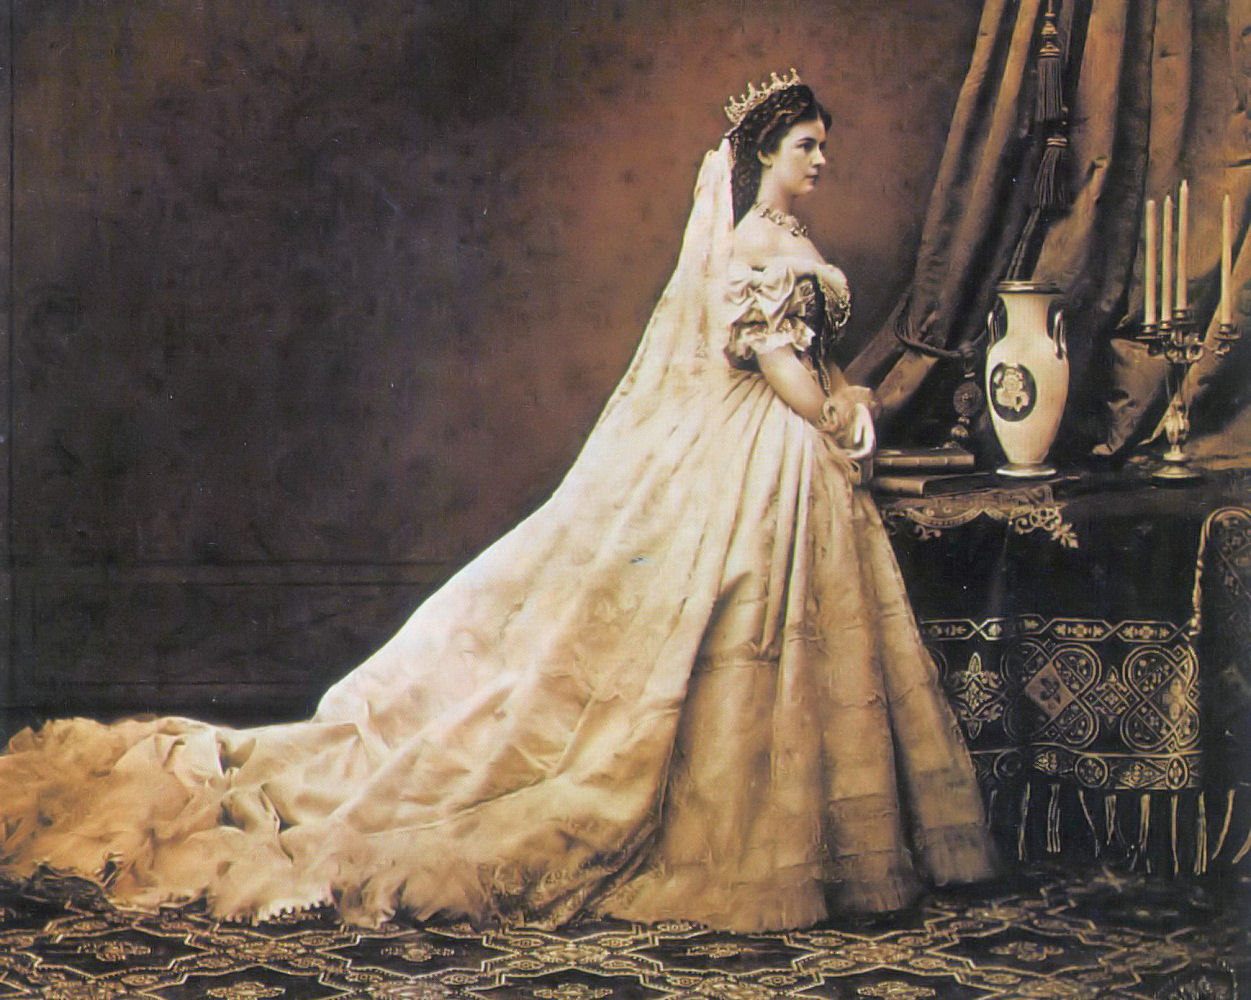 Photograph of Empress Elisabeth oF Austria in coronation dress as Queen of Hungary (by Emil Rabending, 1867)